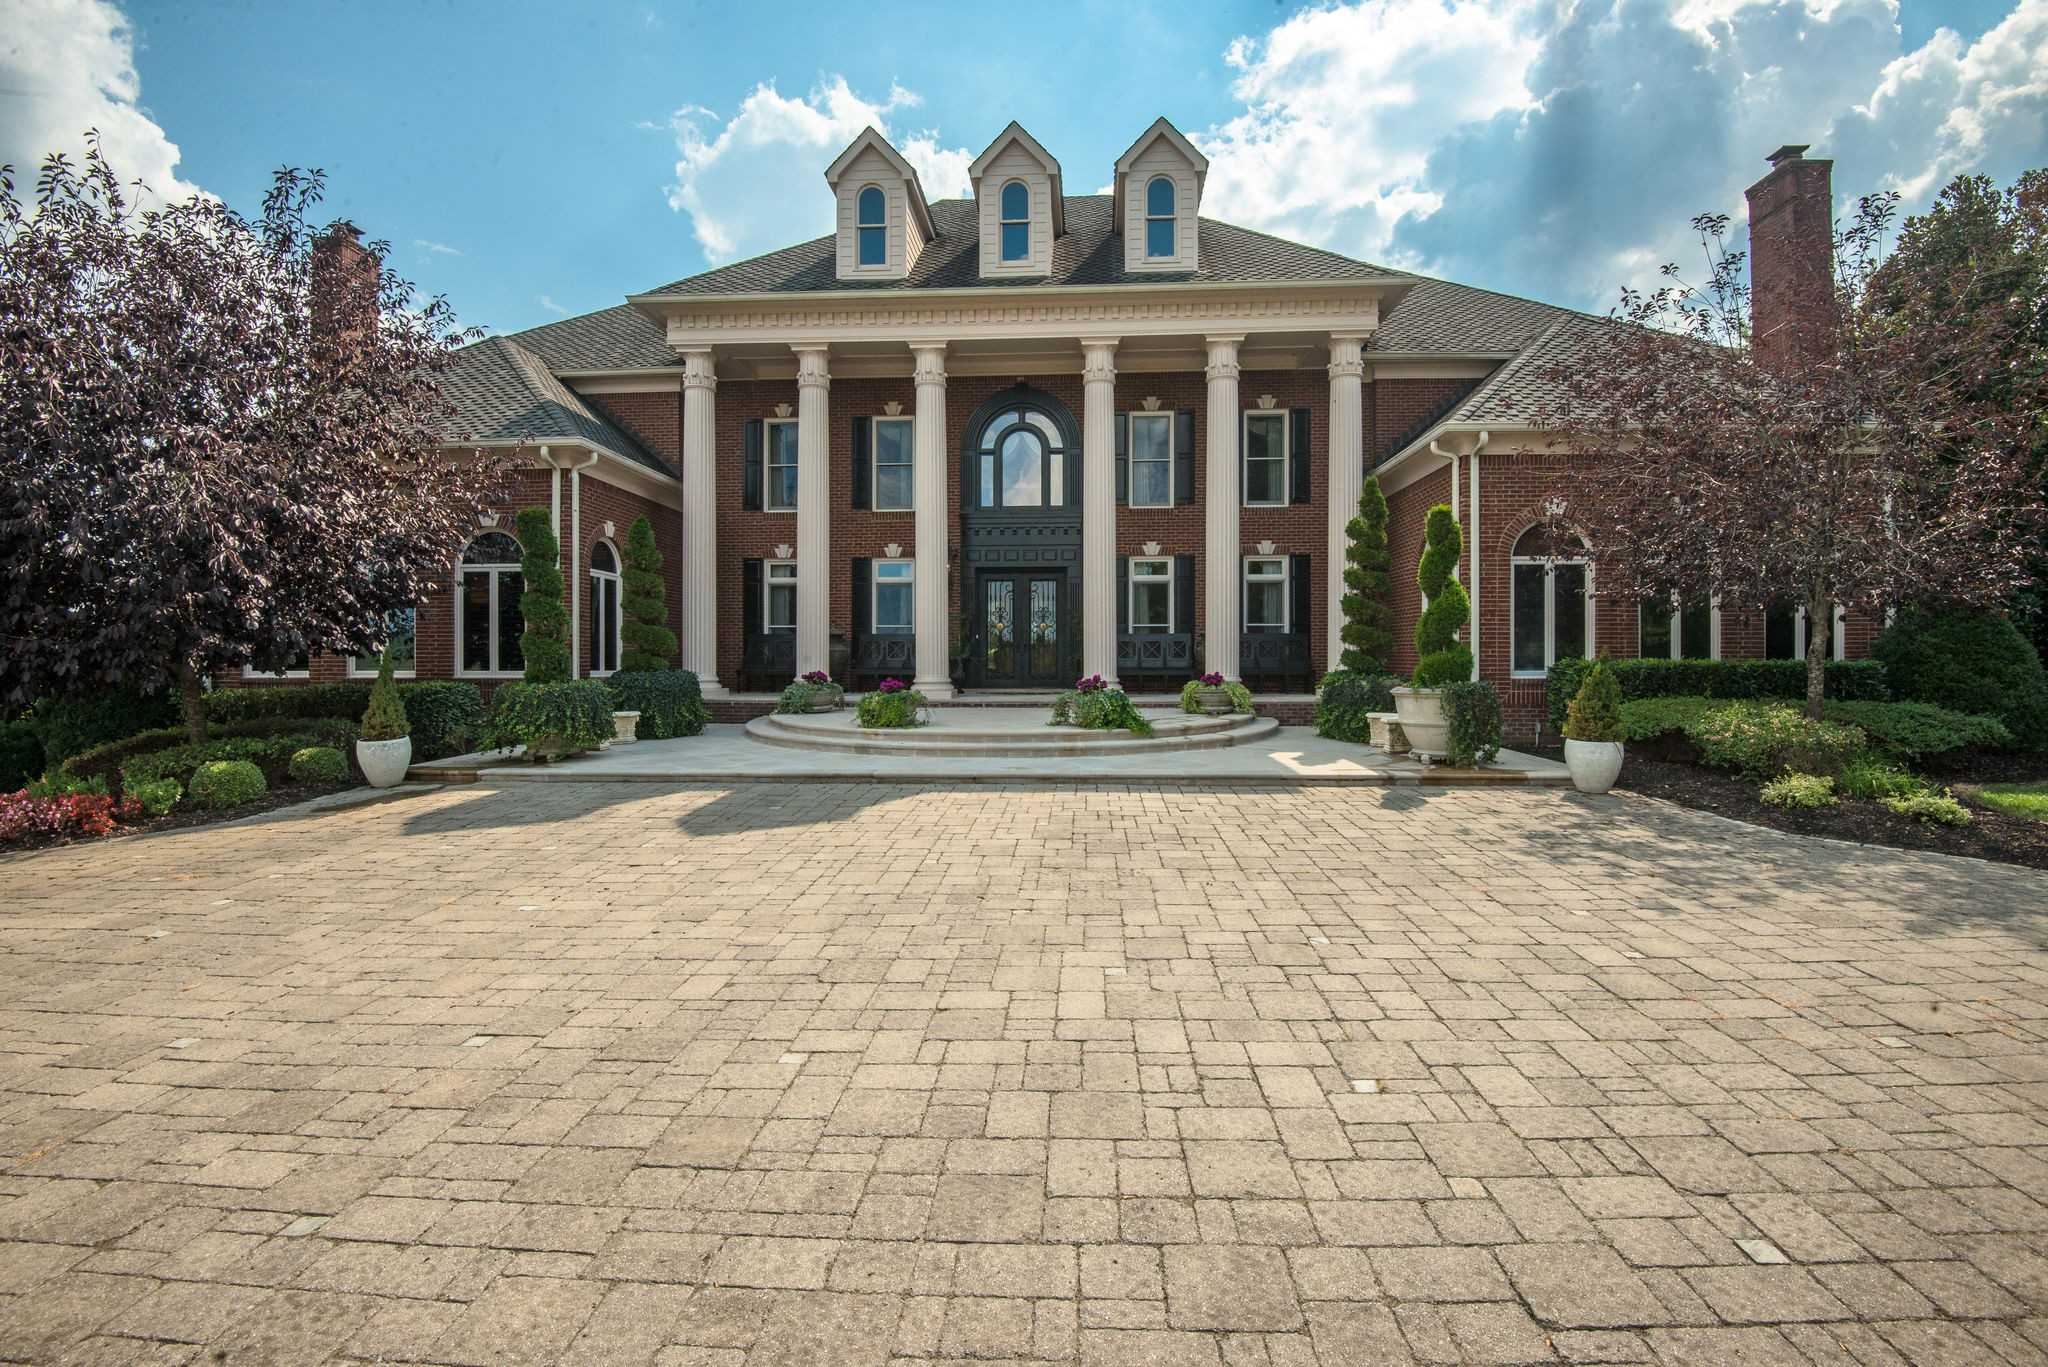 $3,799,000 - 4Br/5Ba -  for Sale in Tbd, Franklin